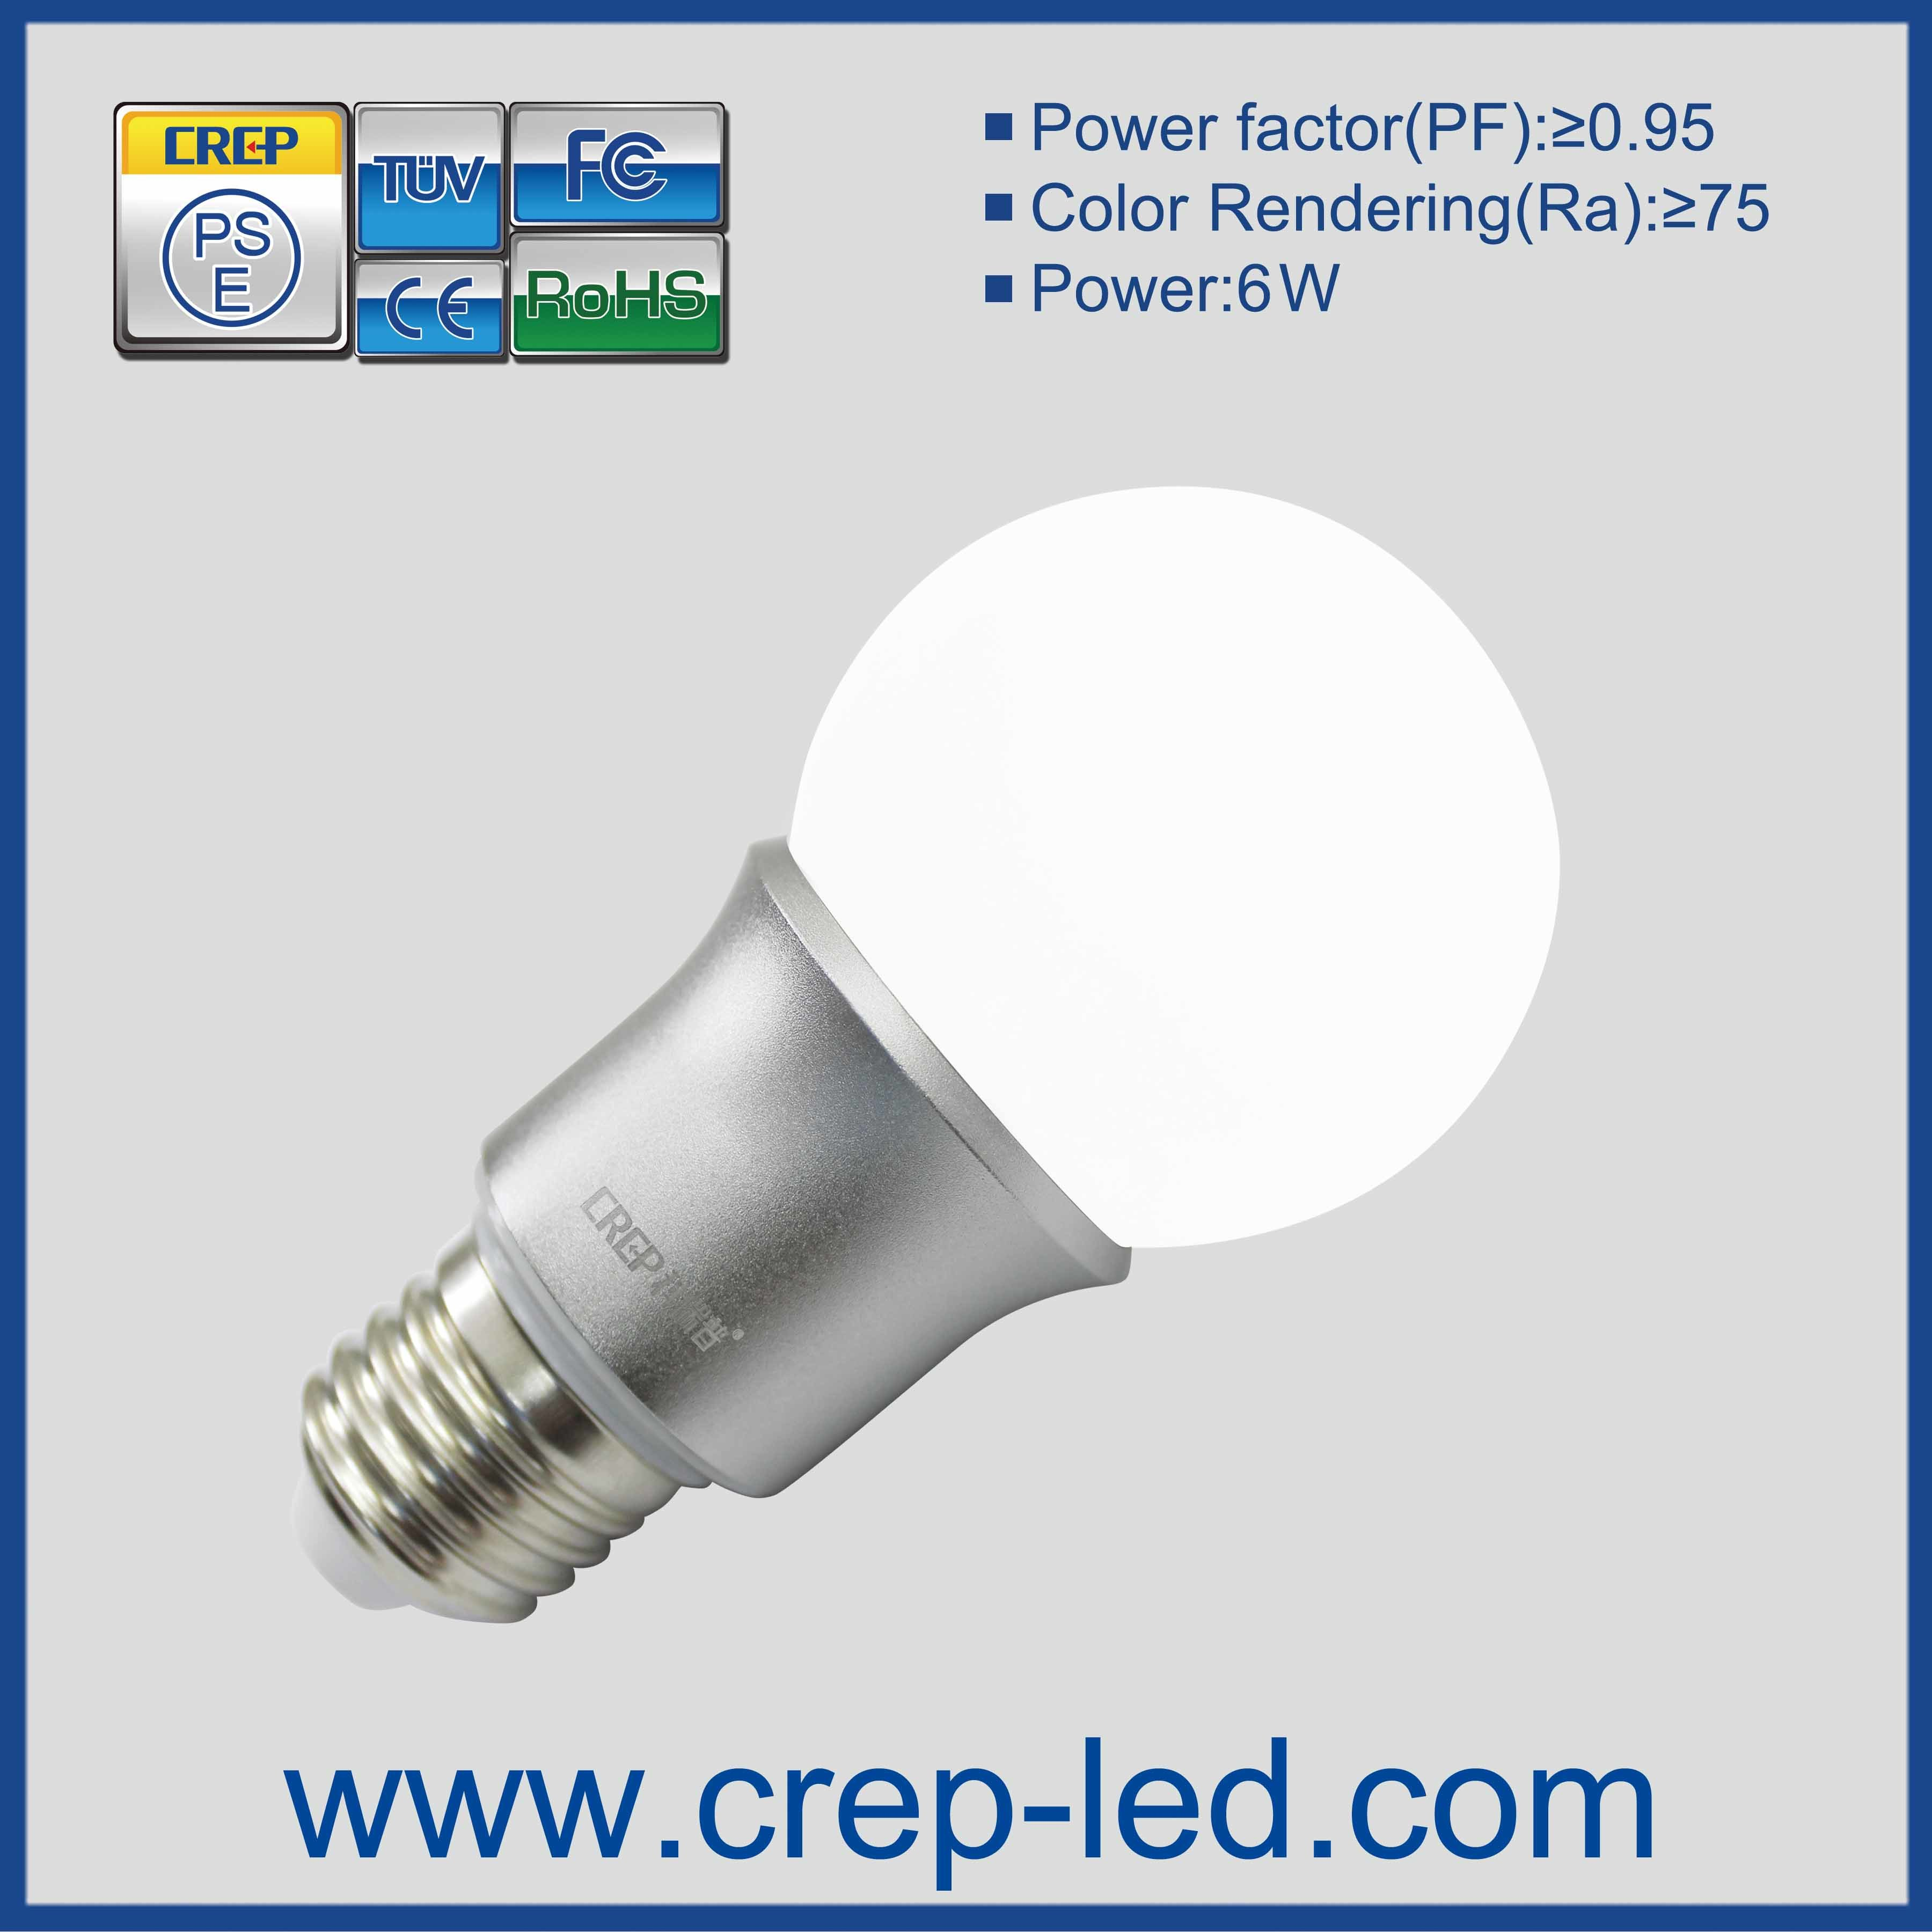 6W UL Dimmable LED Omnidirectional Light Bulb 60W Replacement